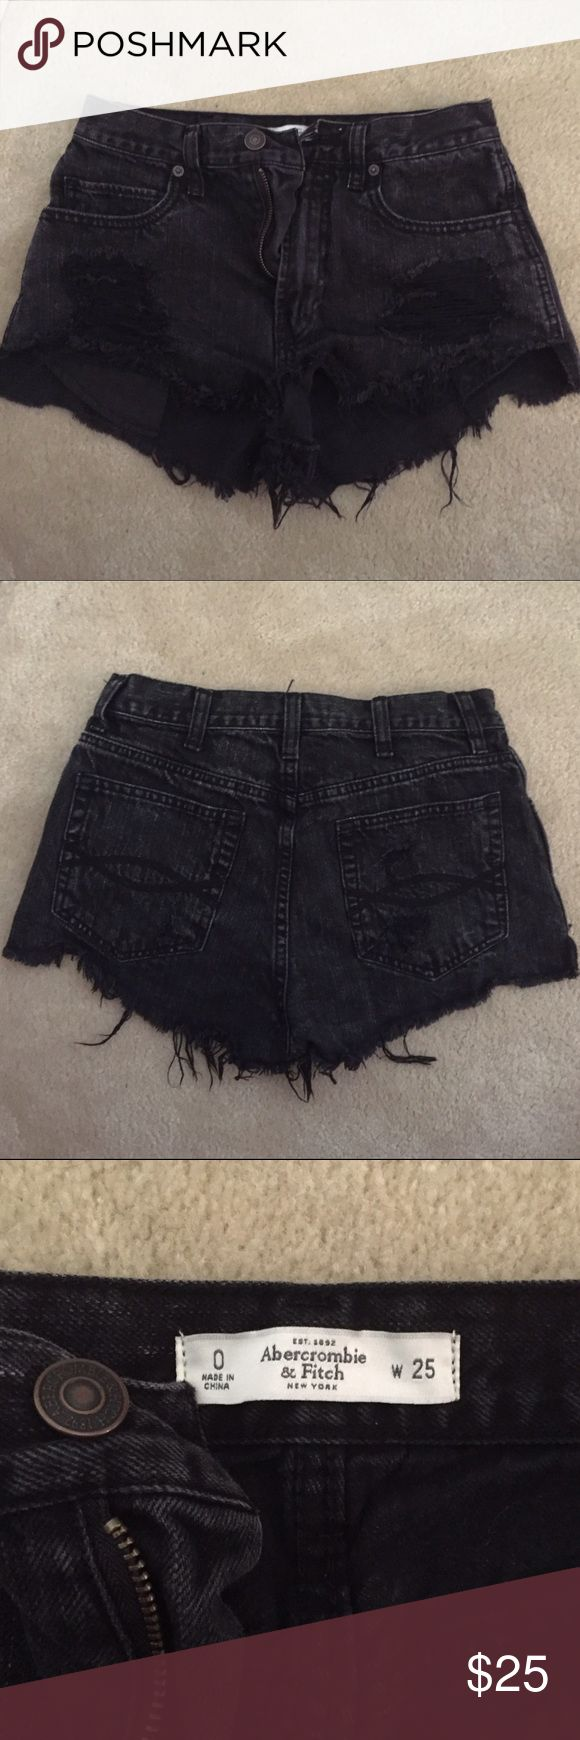 Black Abercrombie and Fitch Shorts Black distressed denim Shorts from Abercrombie and Fitch. Rips on the front of both legs. Only worn once. Abercrombie & Fitch Shorts Jean Shorts